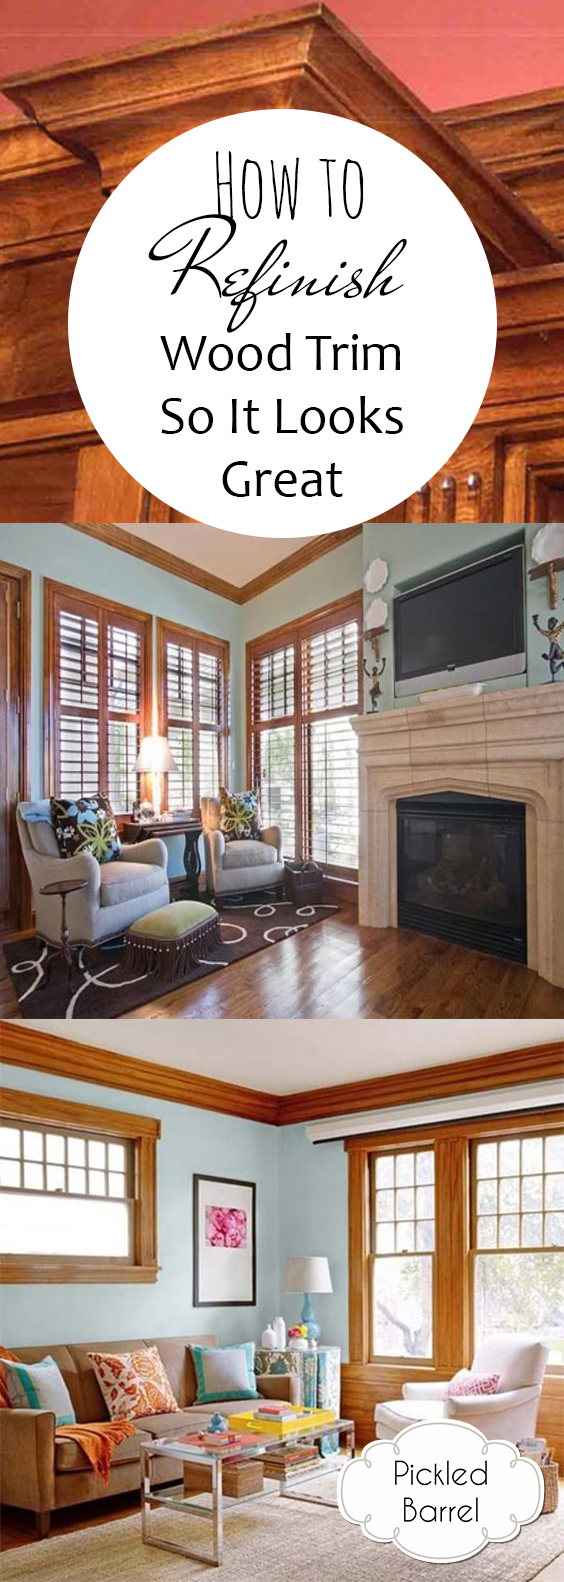 How To Refinish Wood Trim So It Looks Great Refinishing